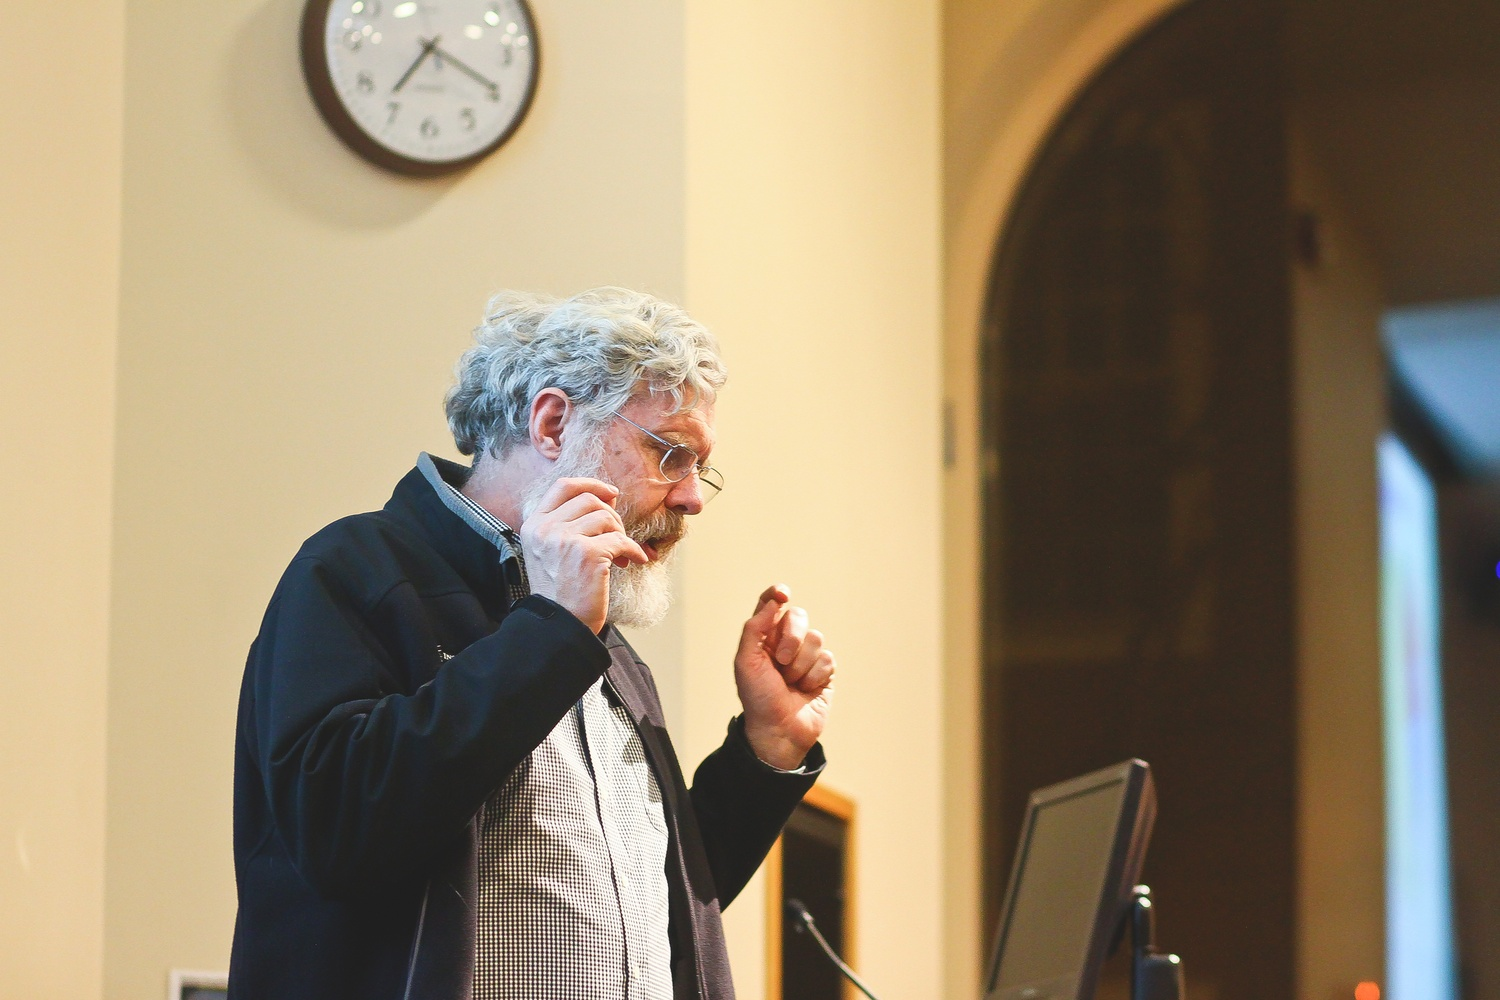 Geneticist George Church, pictured here in 2014, is slated to speak at the March for Science in Boston on April 22.